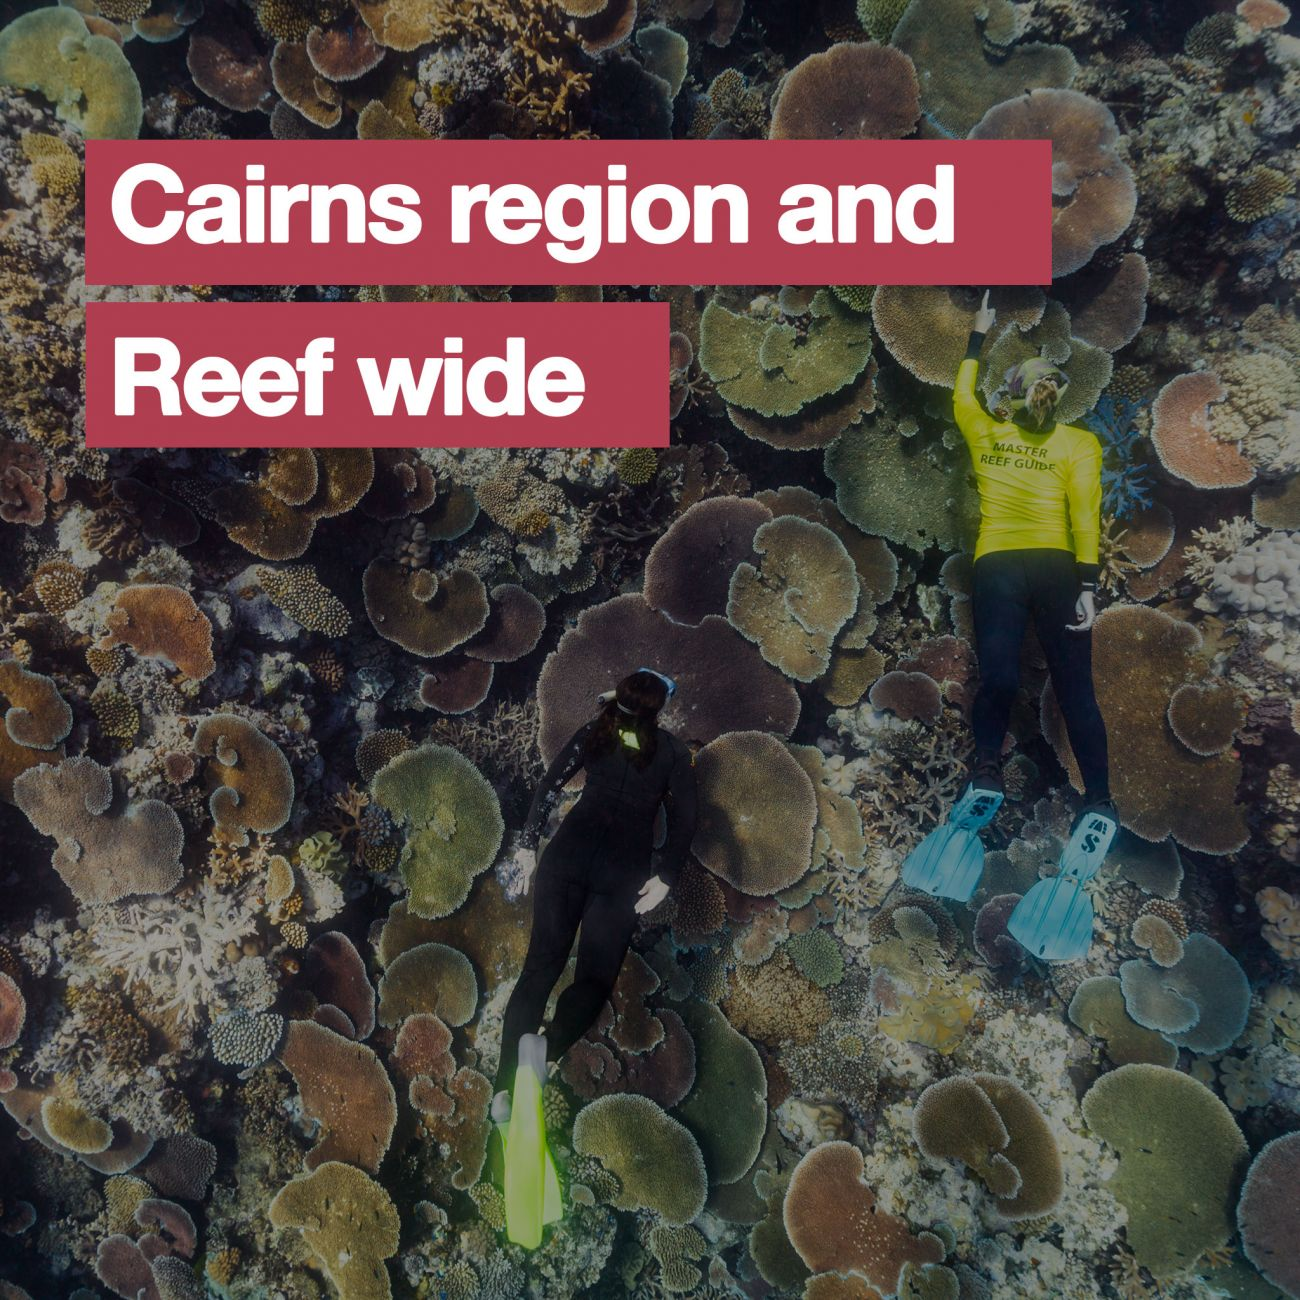 Cairns region and Reef wide